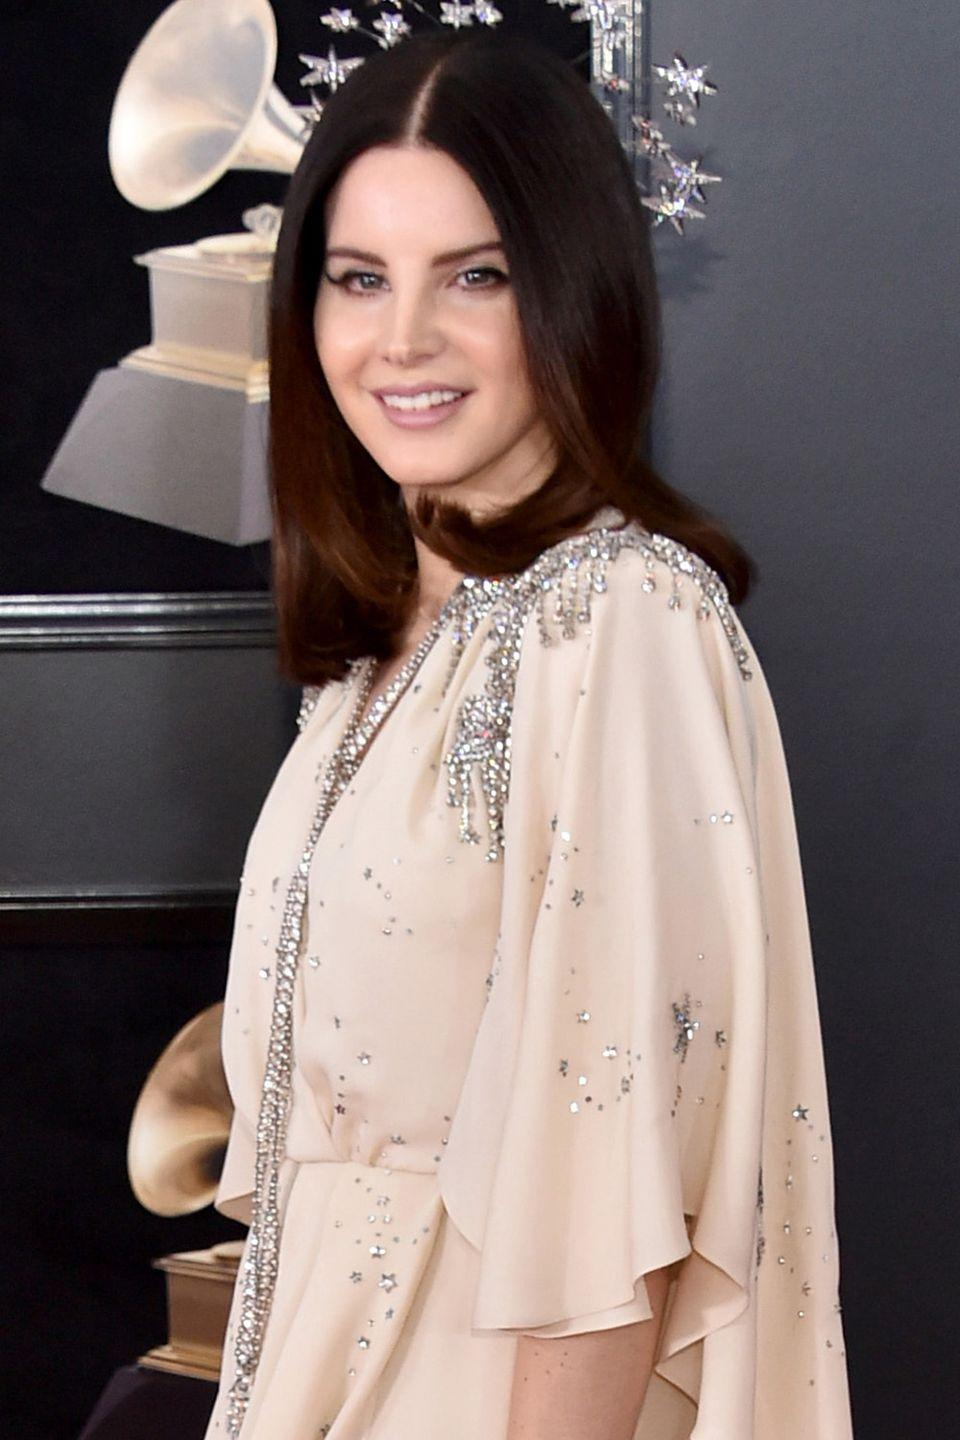 "<p><strong>Born</strong>: Elizabeth Woolridge Grant</p><p>Lana Del Rey was Lizzy (Elizabeth) Grant until she turned 25 and <a href=""https://www.theguardian.com/music/2012/jan/21/lana-del-rey-pop"" rel=""nofollow noopener"" target=""_blank"" data-ylk=""slk:developed her alter ego"" class=""link rapid-noclick-resp"">developed her alter ego</a>, Lana Del Rey.</p>"